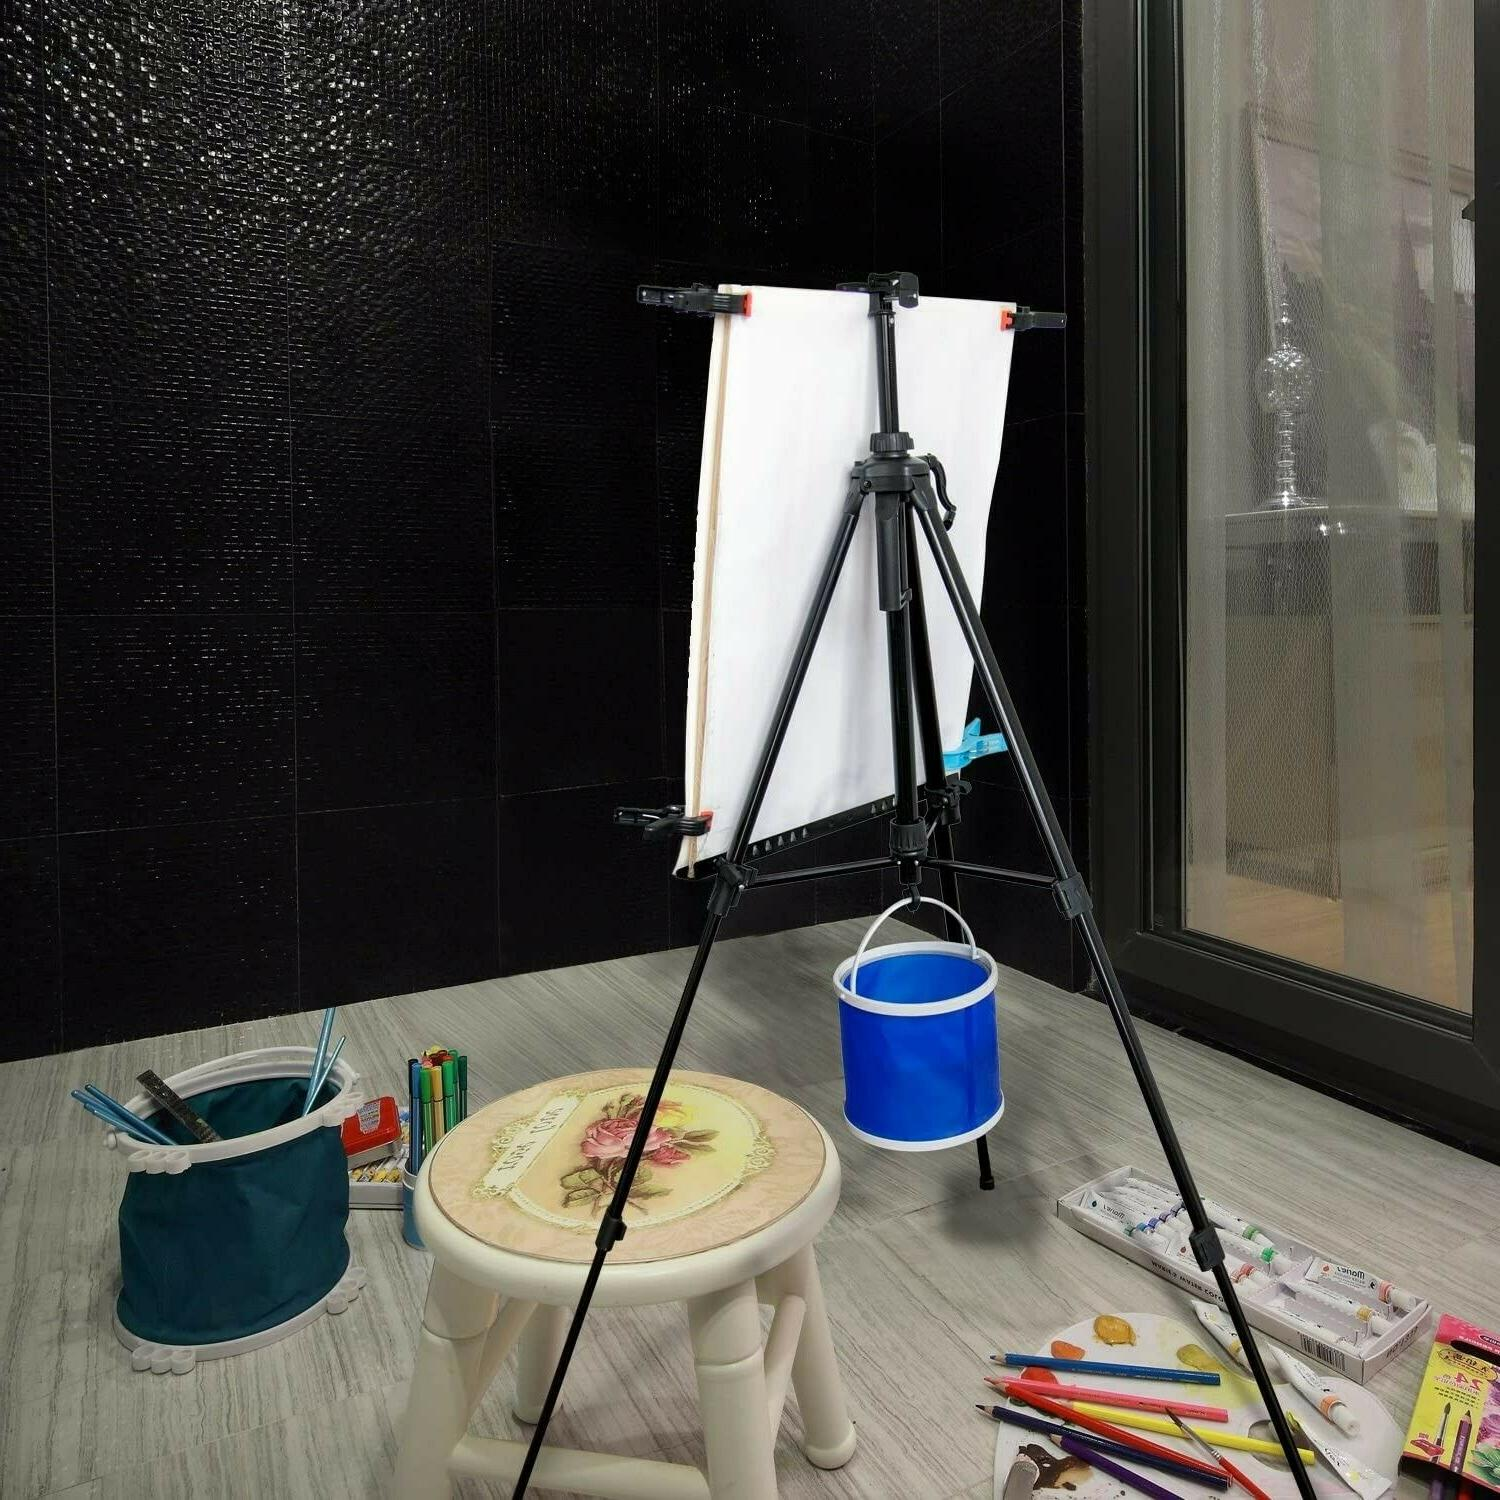 Painting Tripod Stand for Adjustable